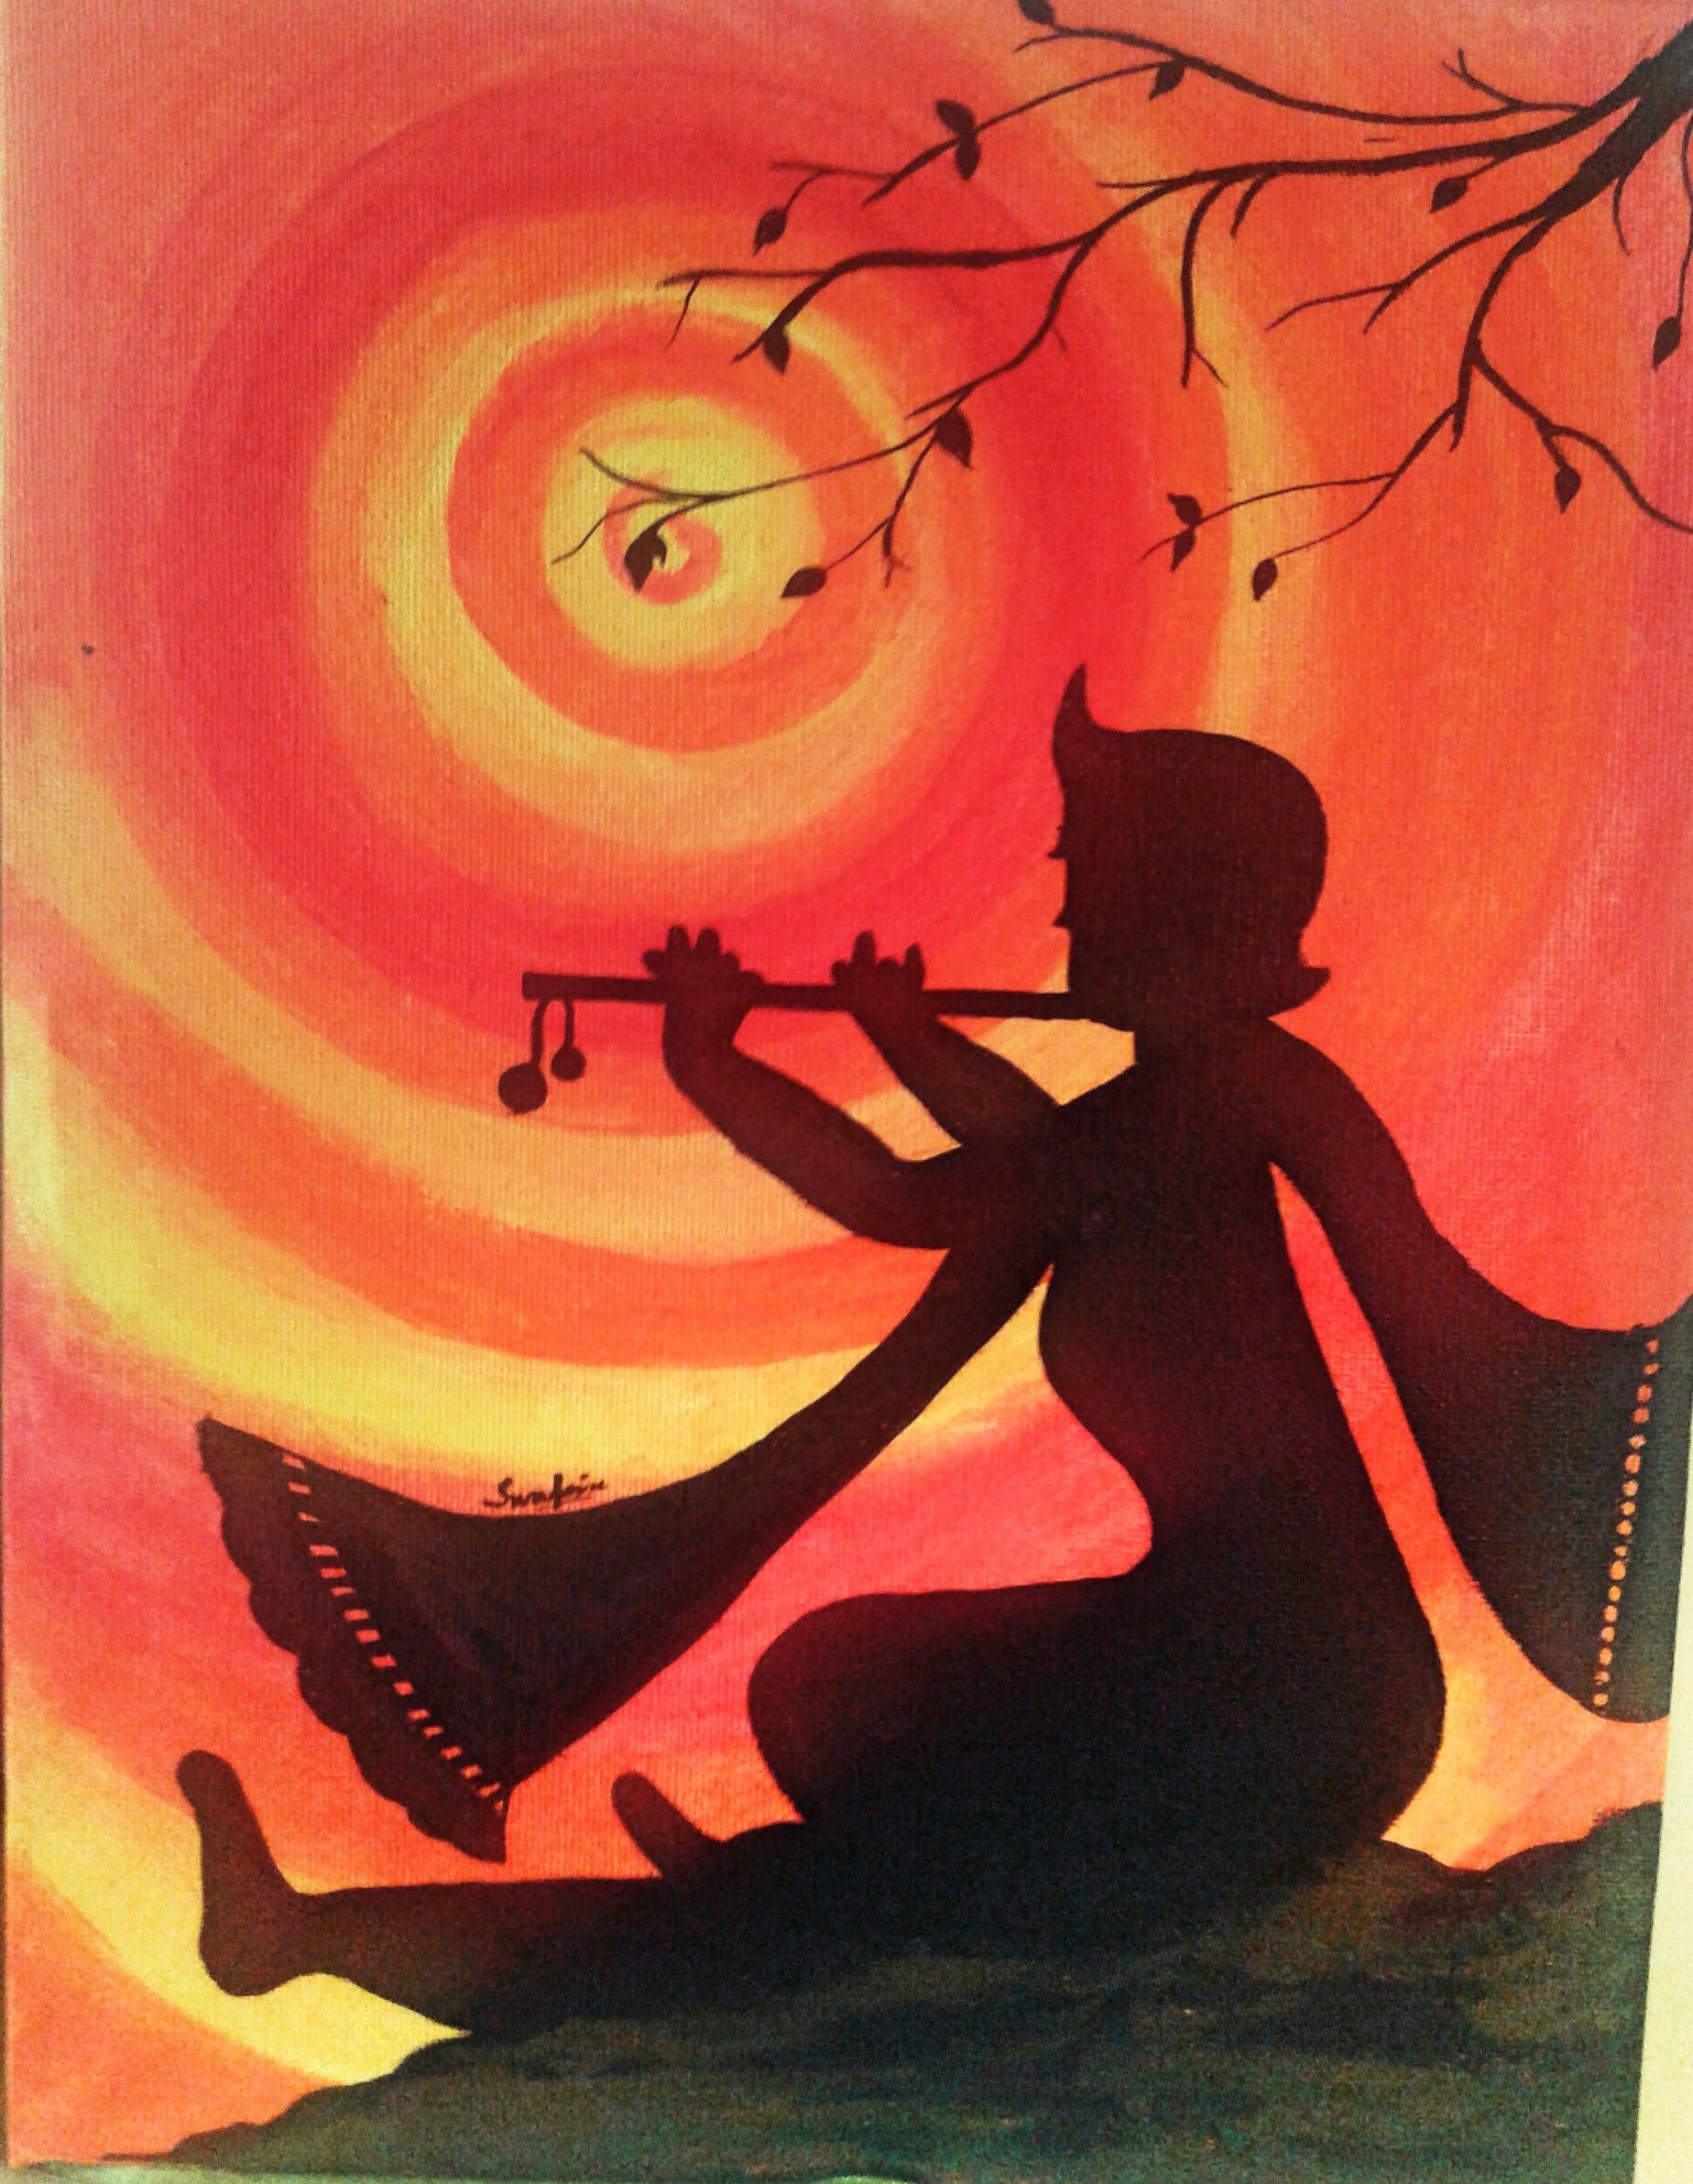 Hare Krishna Canvas Painting 5 Sold Out Still Orders Are Welcome